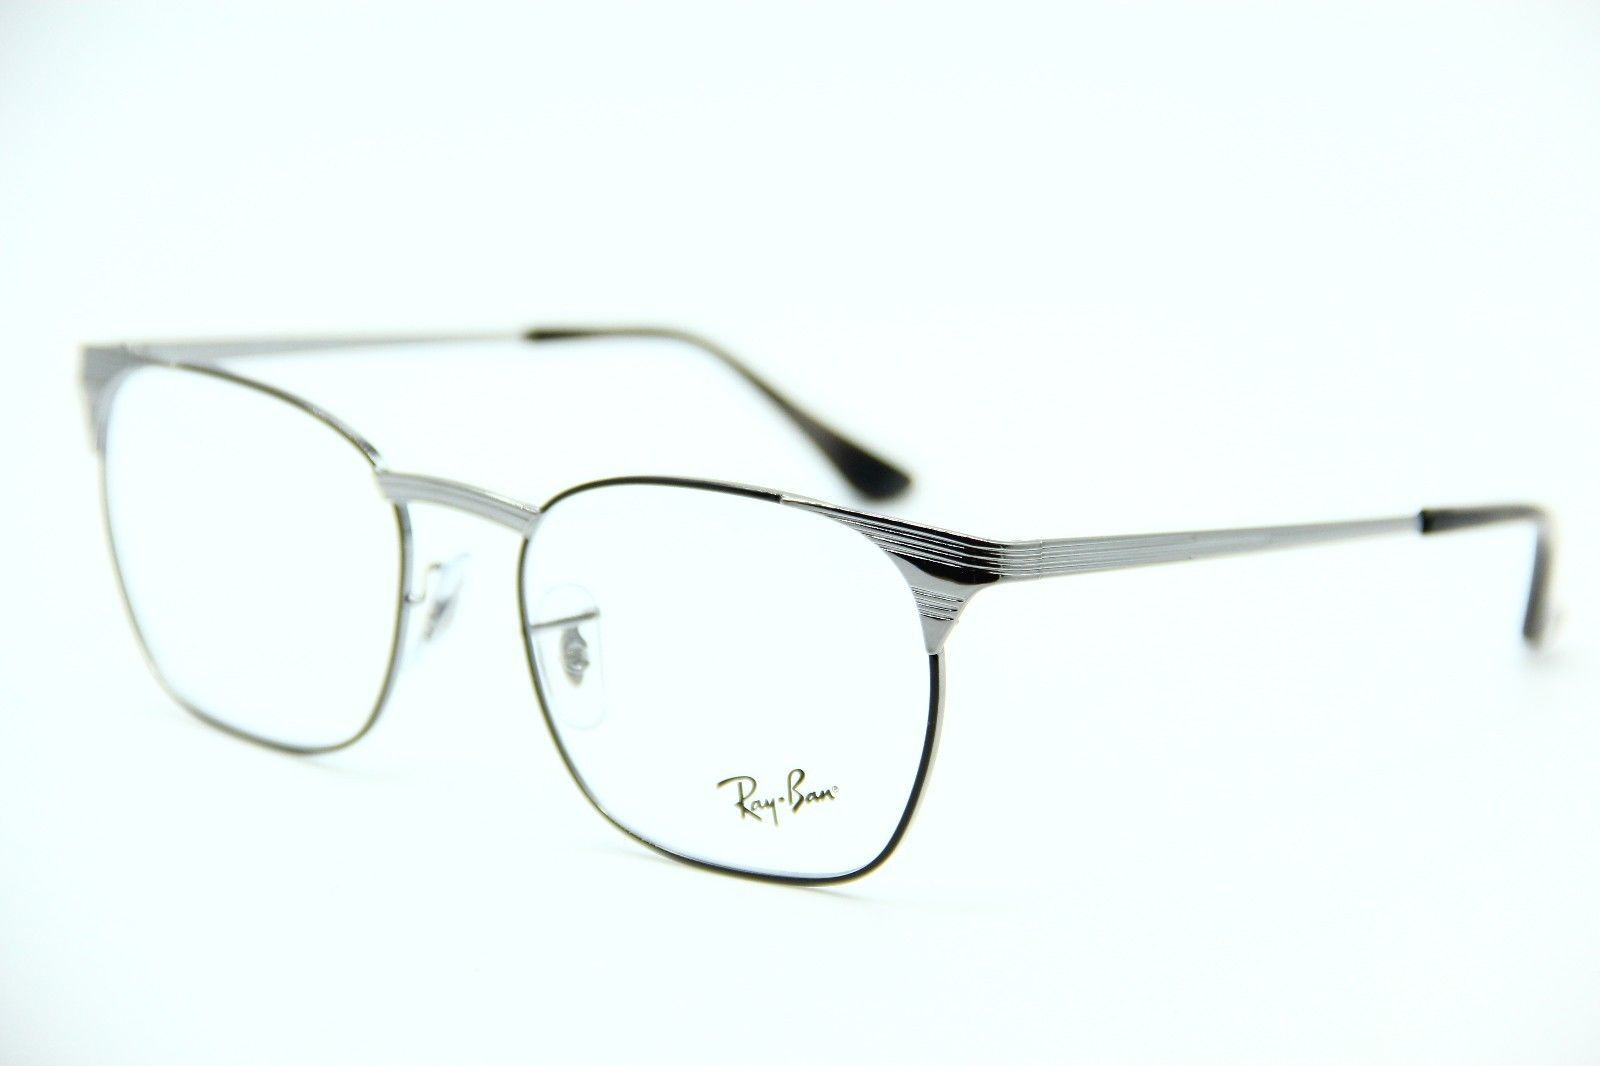 e71f79b37e New RAY-BAN Rb 6386 2901 Black Eyeglasses and similar items. 57